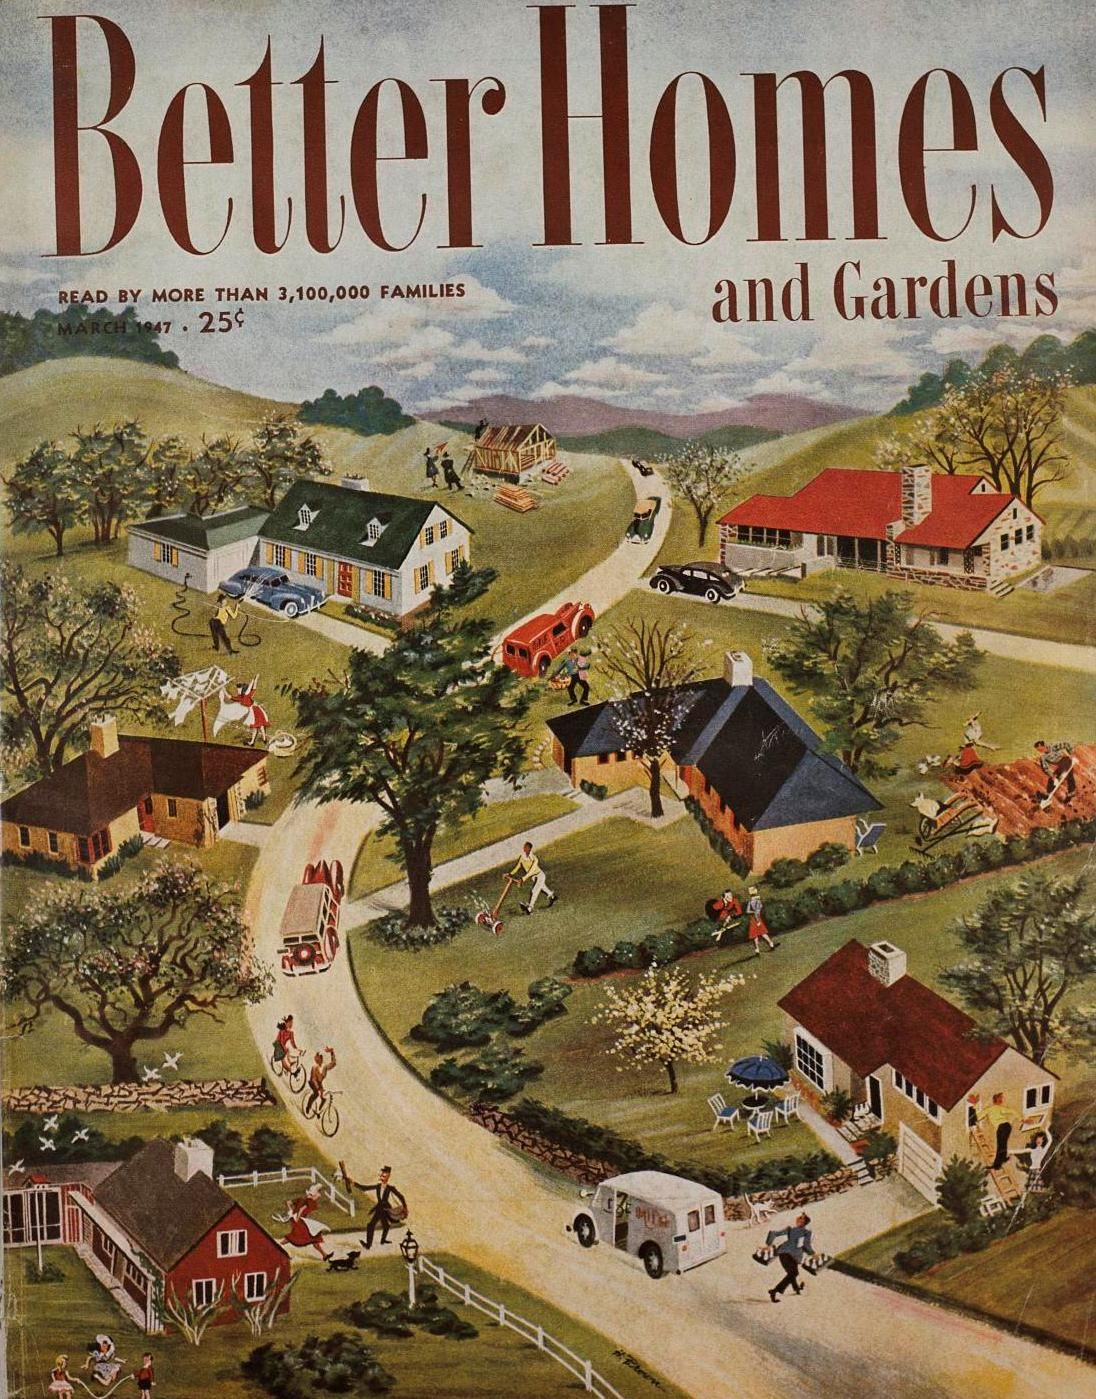 Vintage BHG Covers: March1947 - A special memory for me since this ...